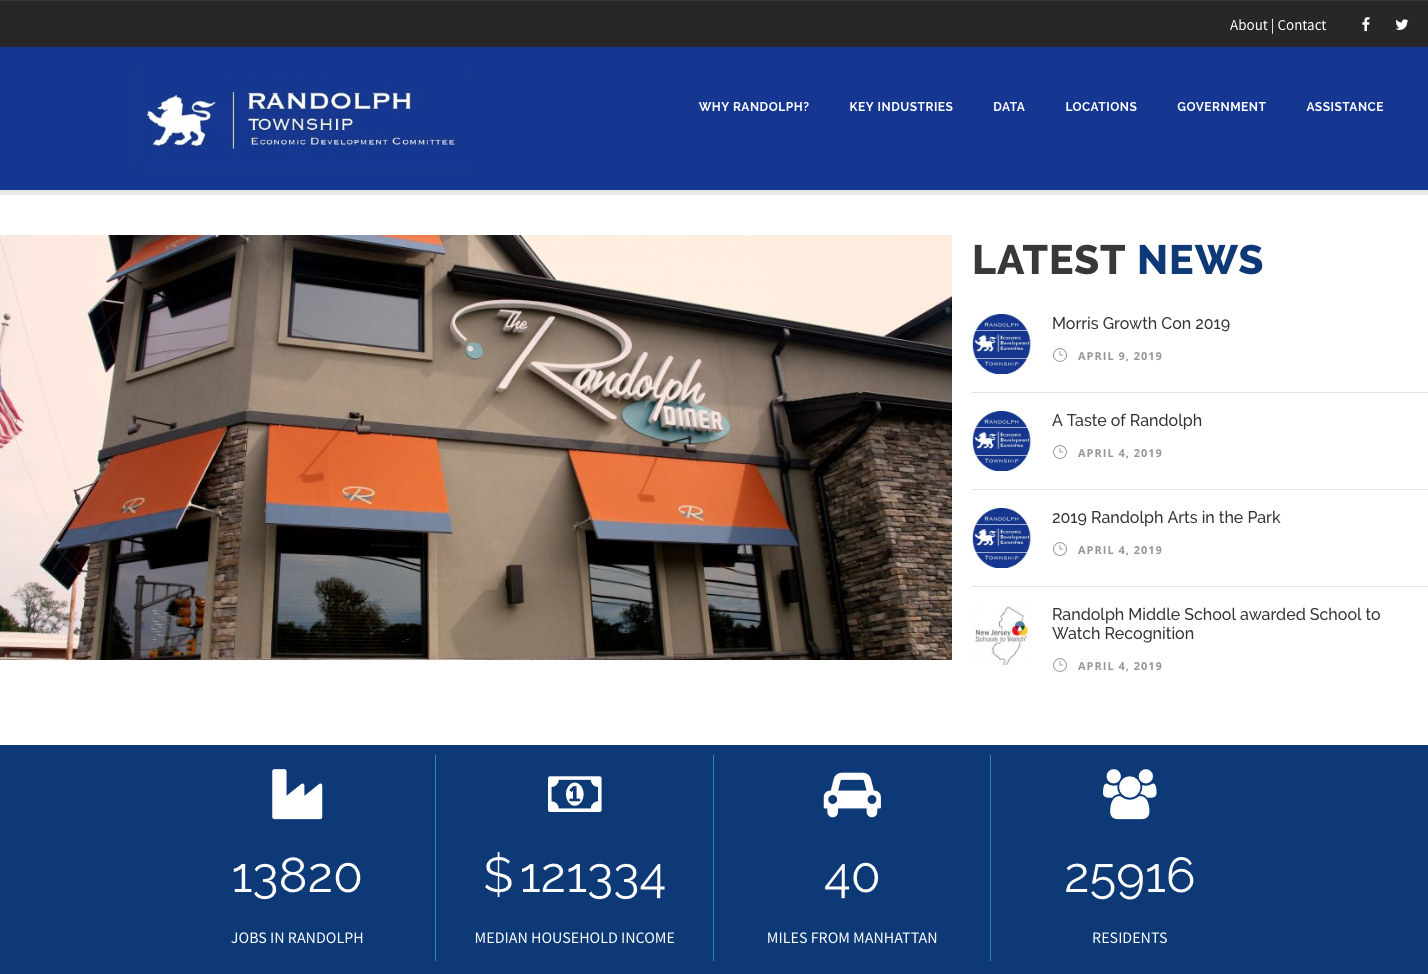 Screenshot showing the homepage of the Randolph Economic Development website.